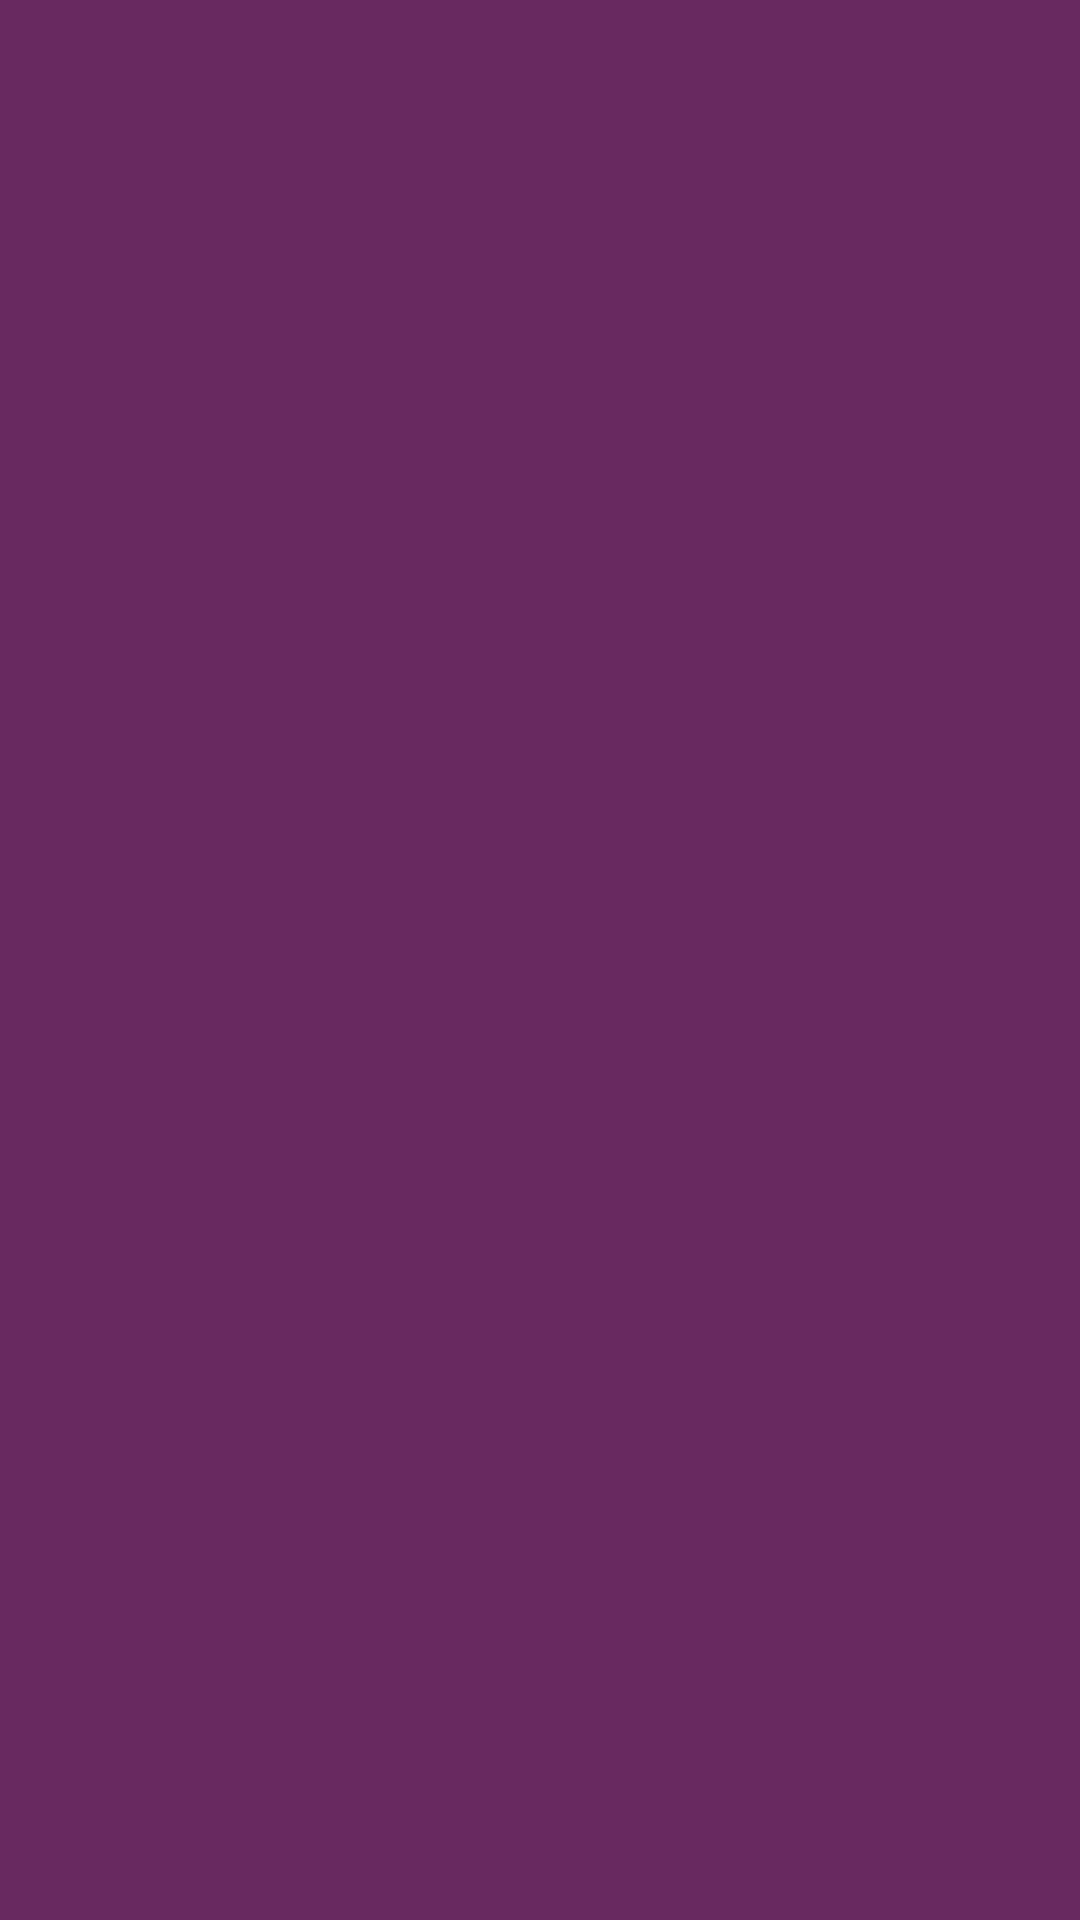 1080x1920 Palatinate Purple Solid Color Background